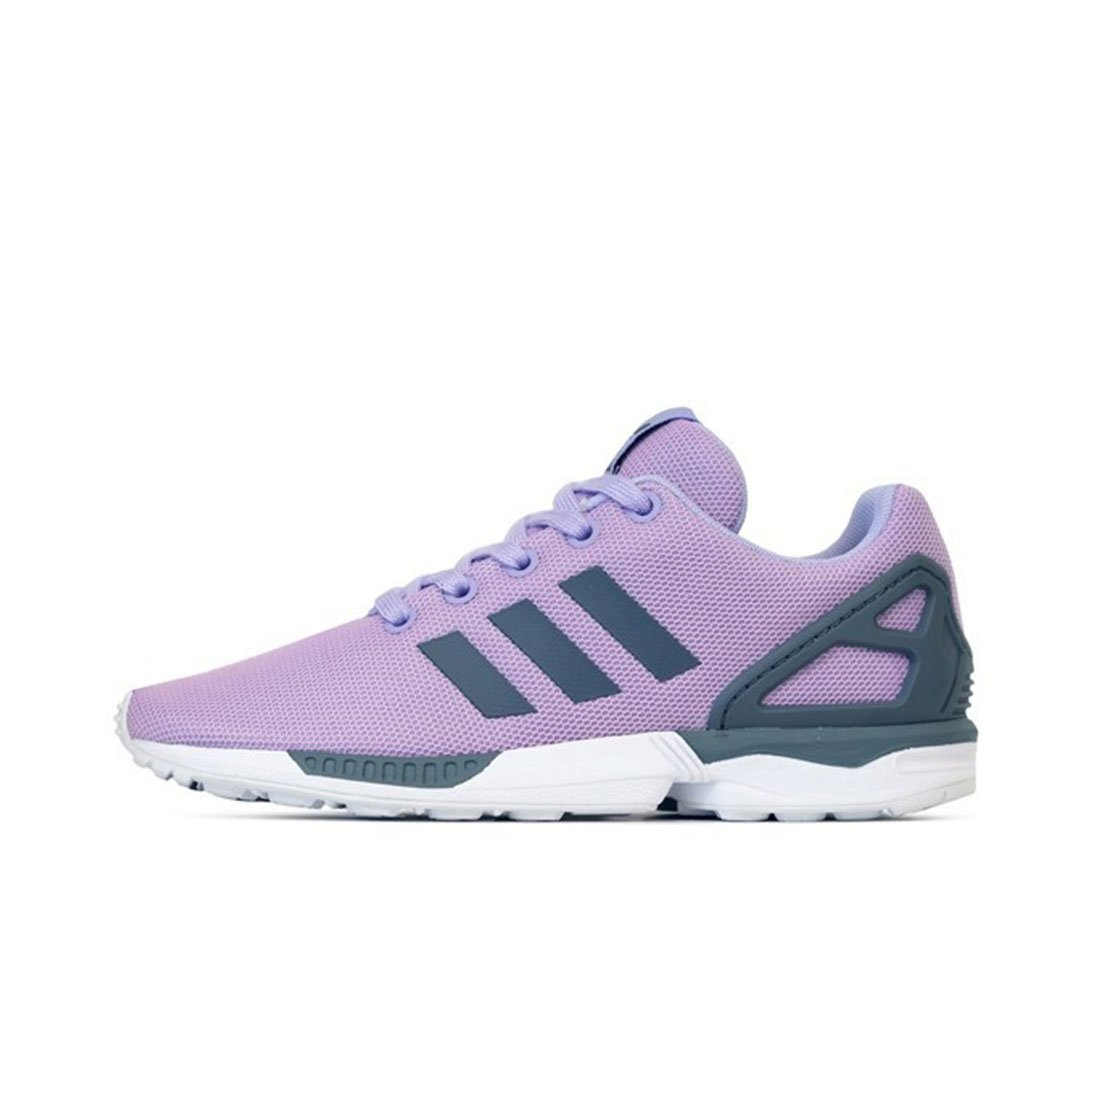 Purple//glopur//Onix//Ftwwht adidas Little Kids ZX Flux K